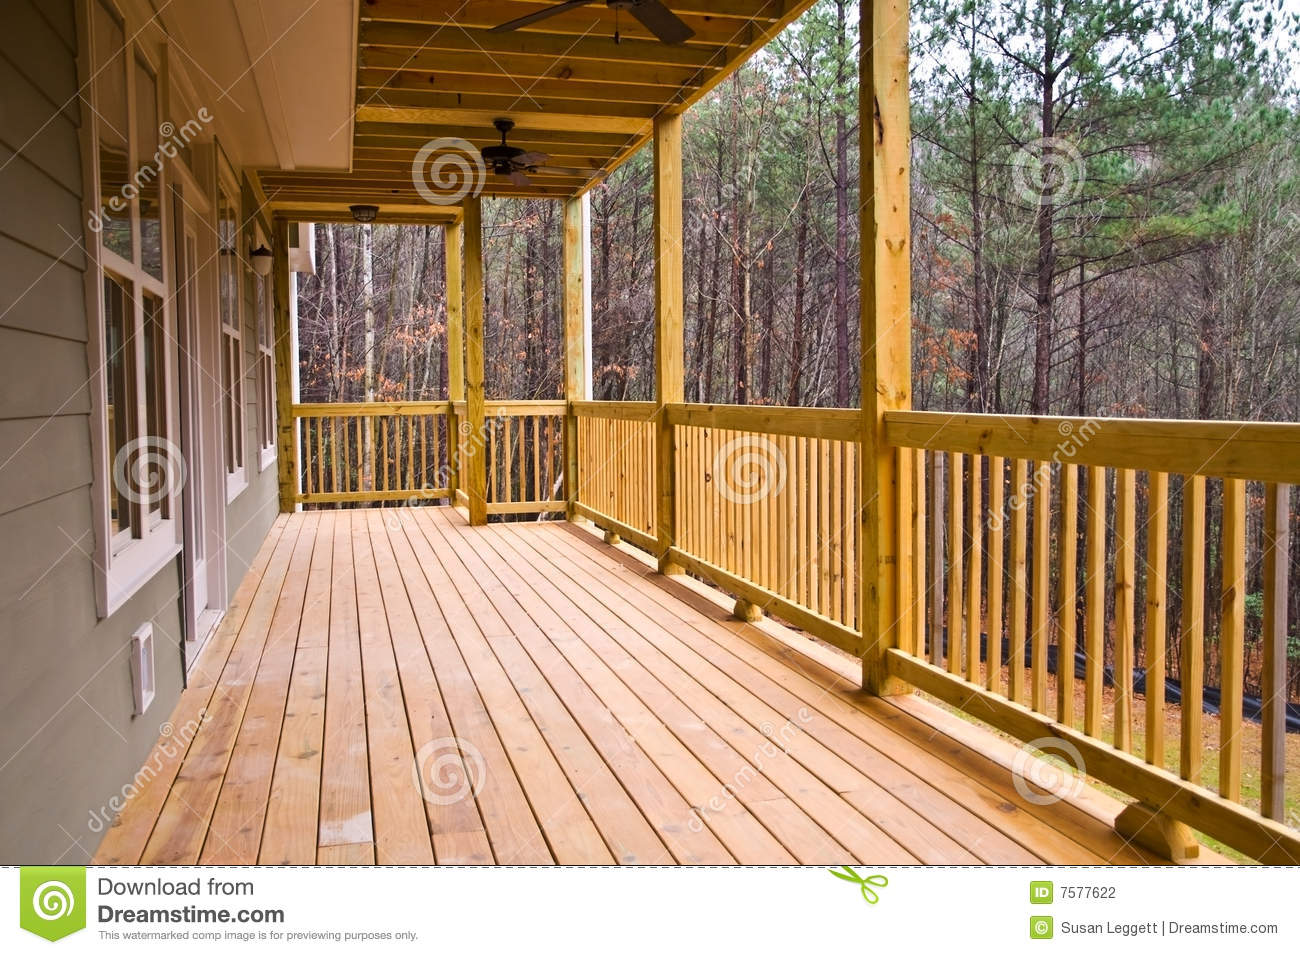 Wood Deck/Porch on House